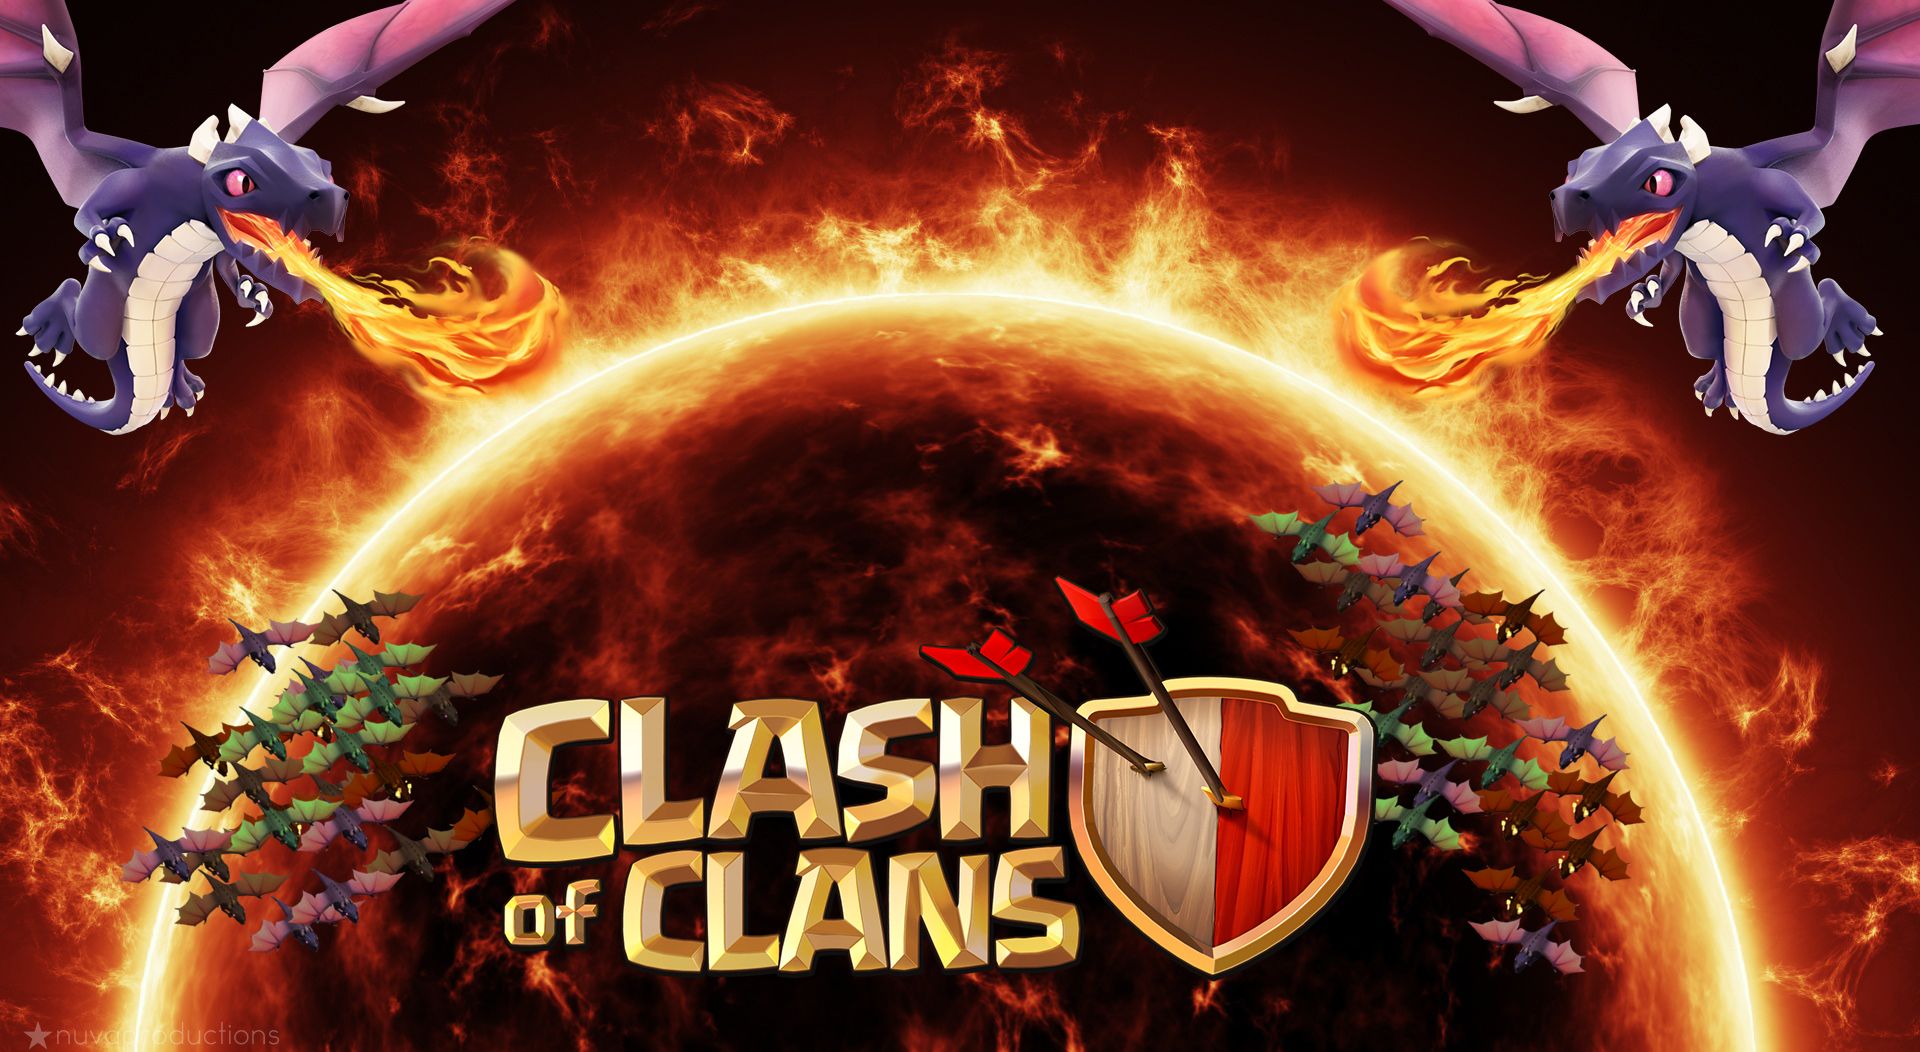 Clash Of Clans Wizard Wallpaper Posted By Michelle Johnson